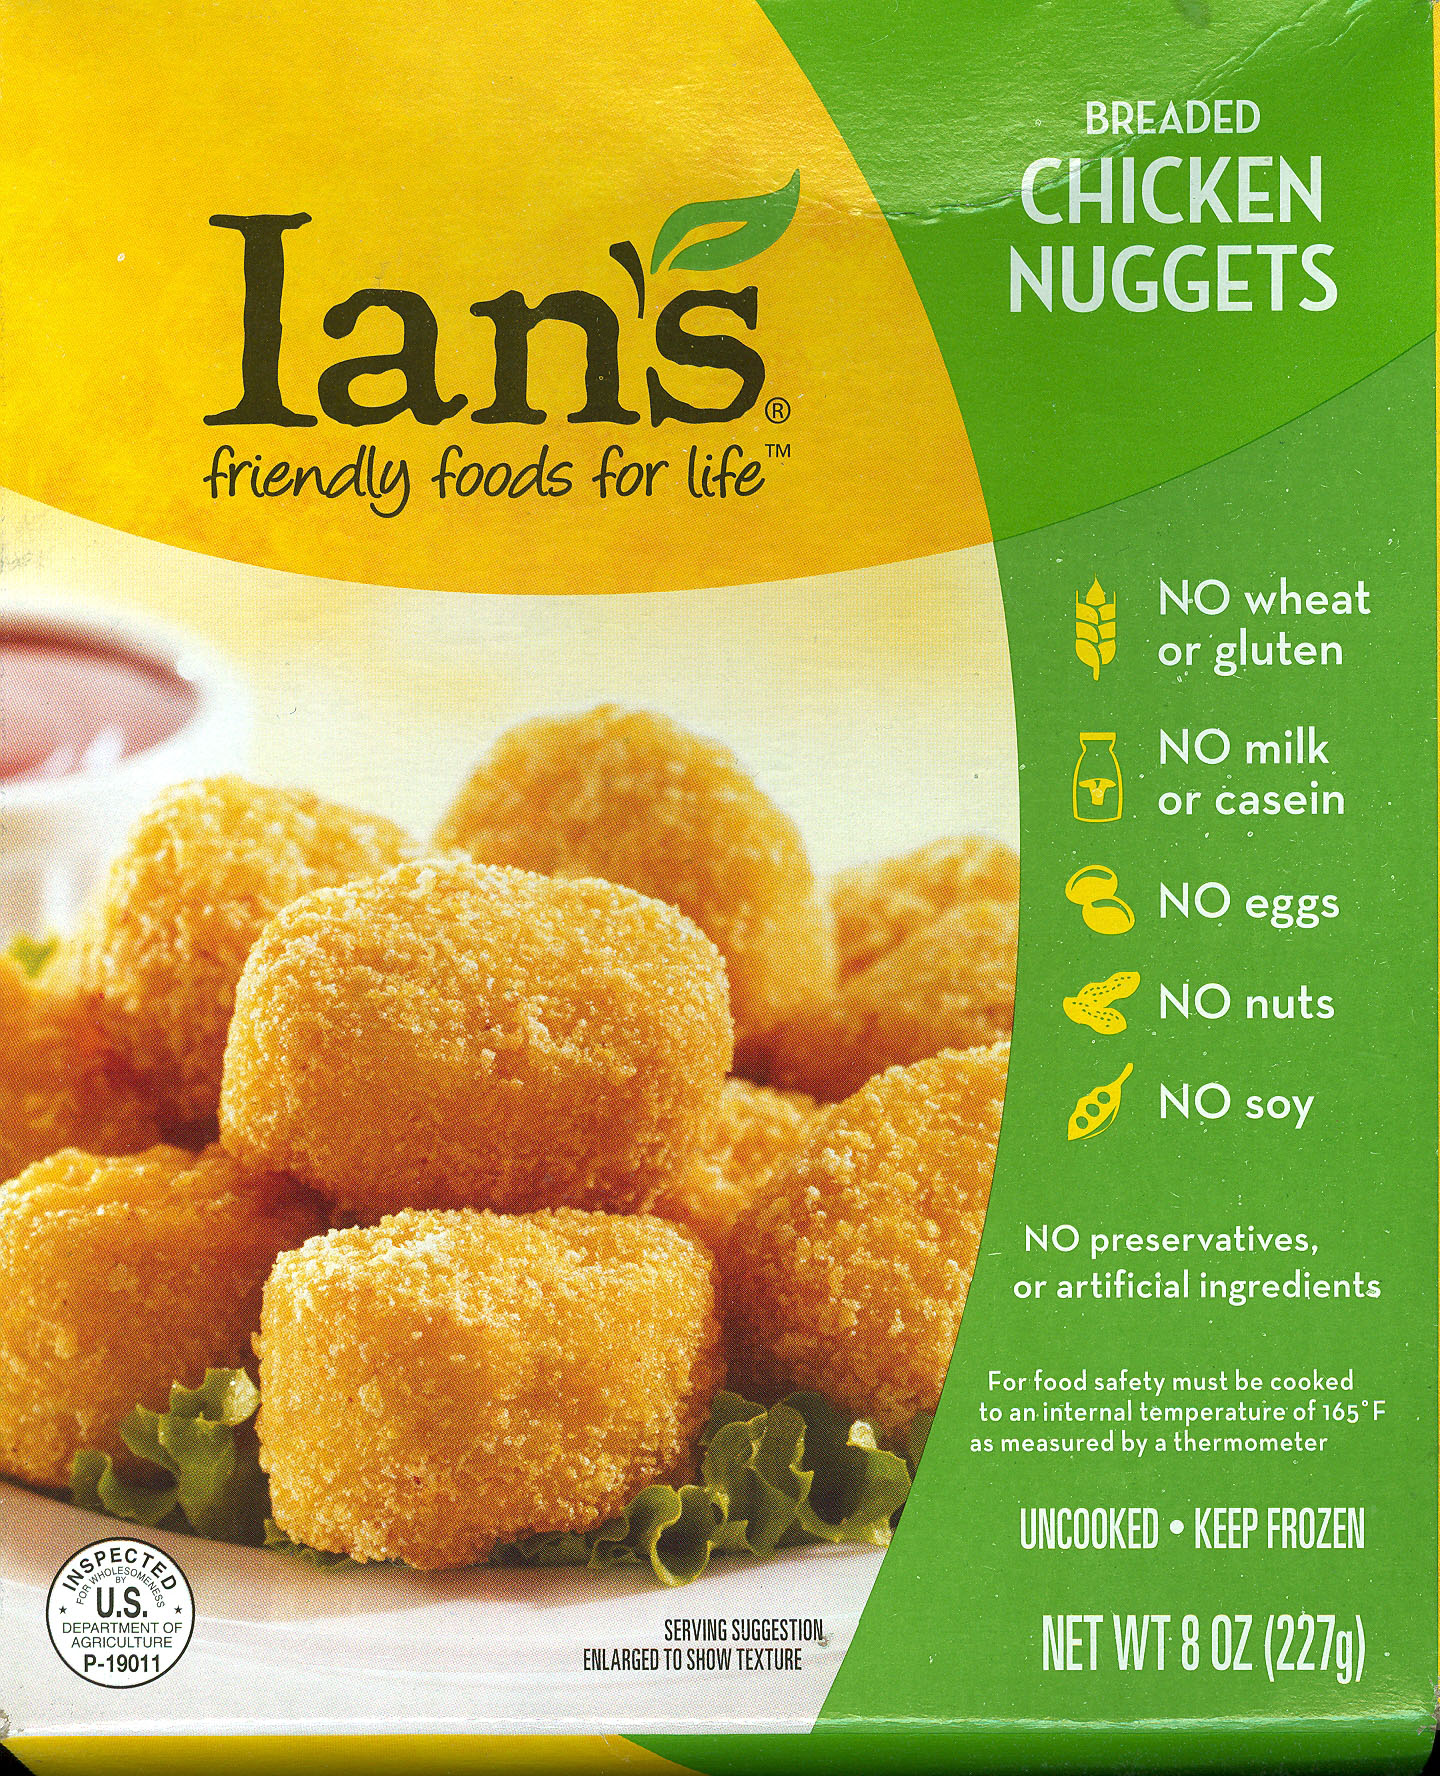 Ian's Breaded Chicken Nuggets